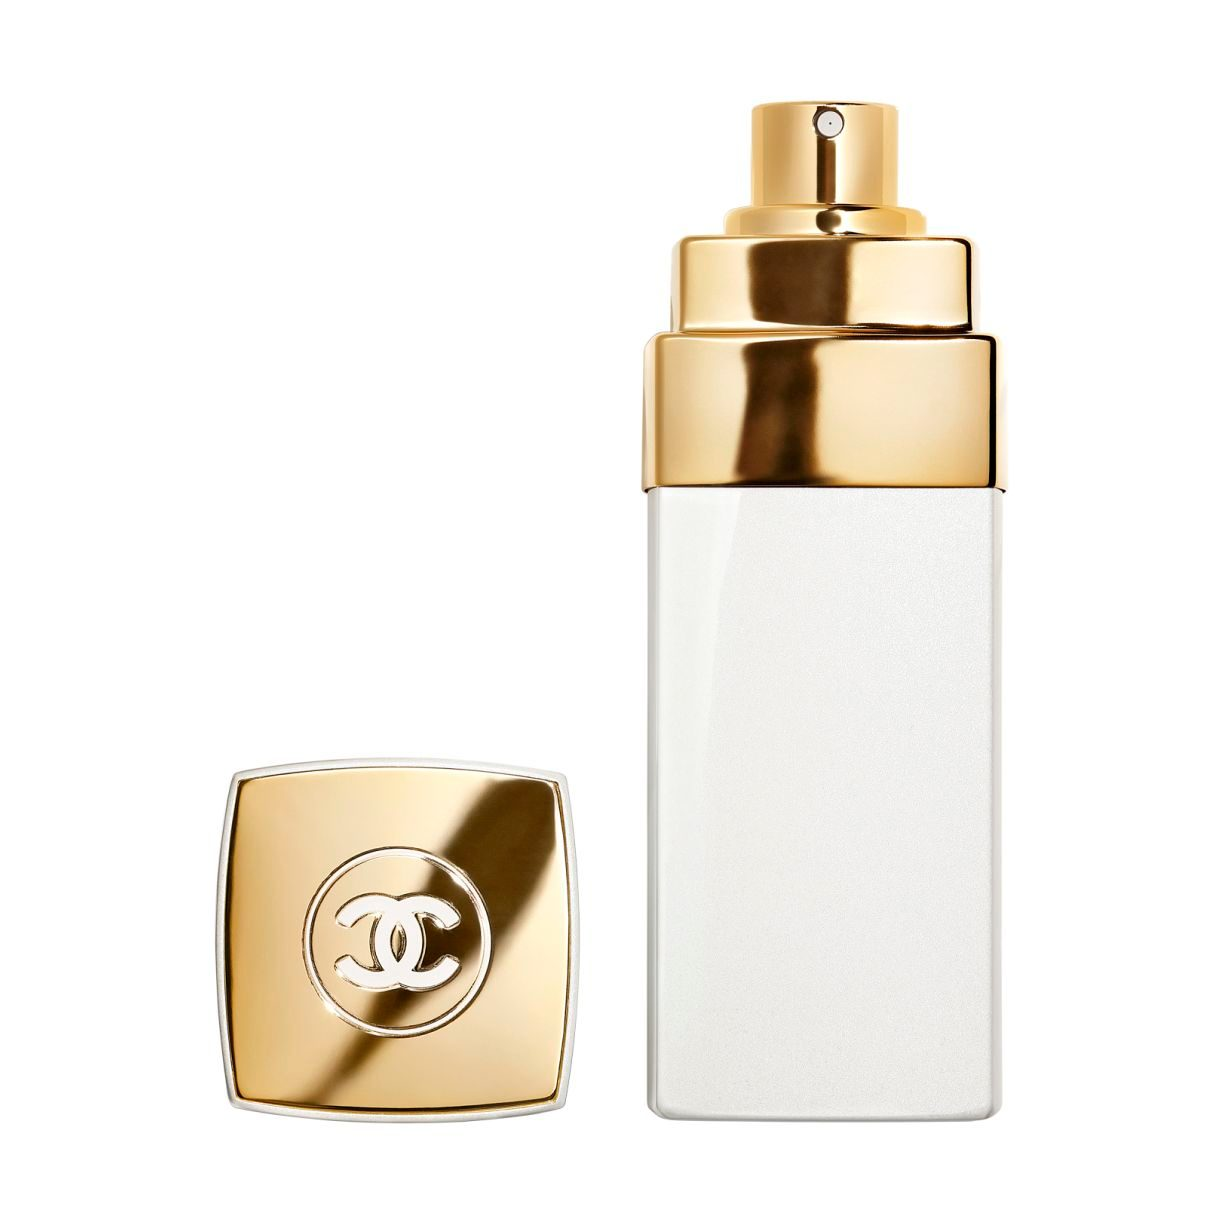 COCO MADEMOISELLE EAU DE TOILETTE REFILLABLE SPRAY